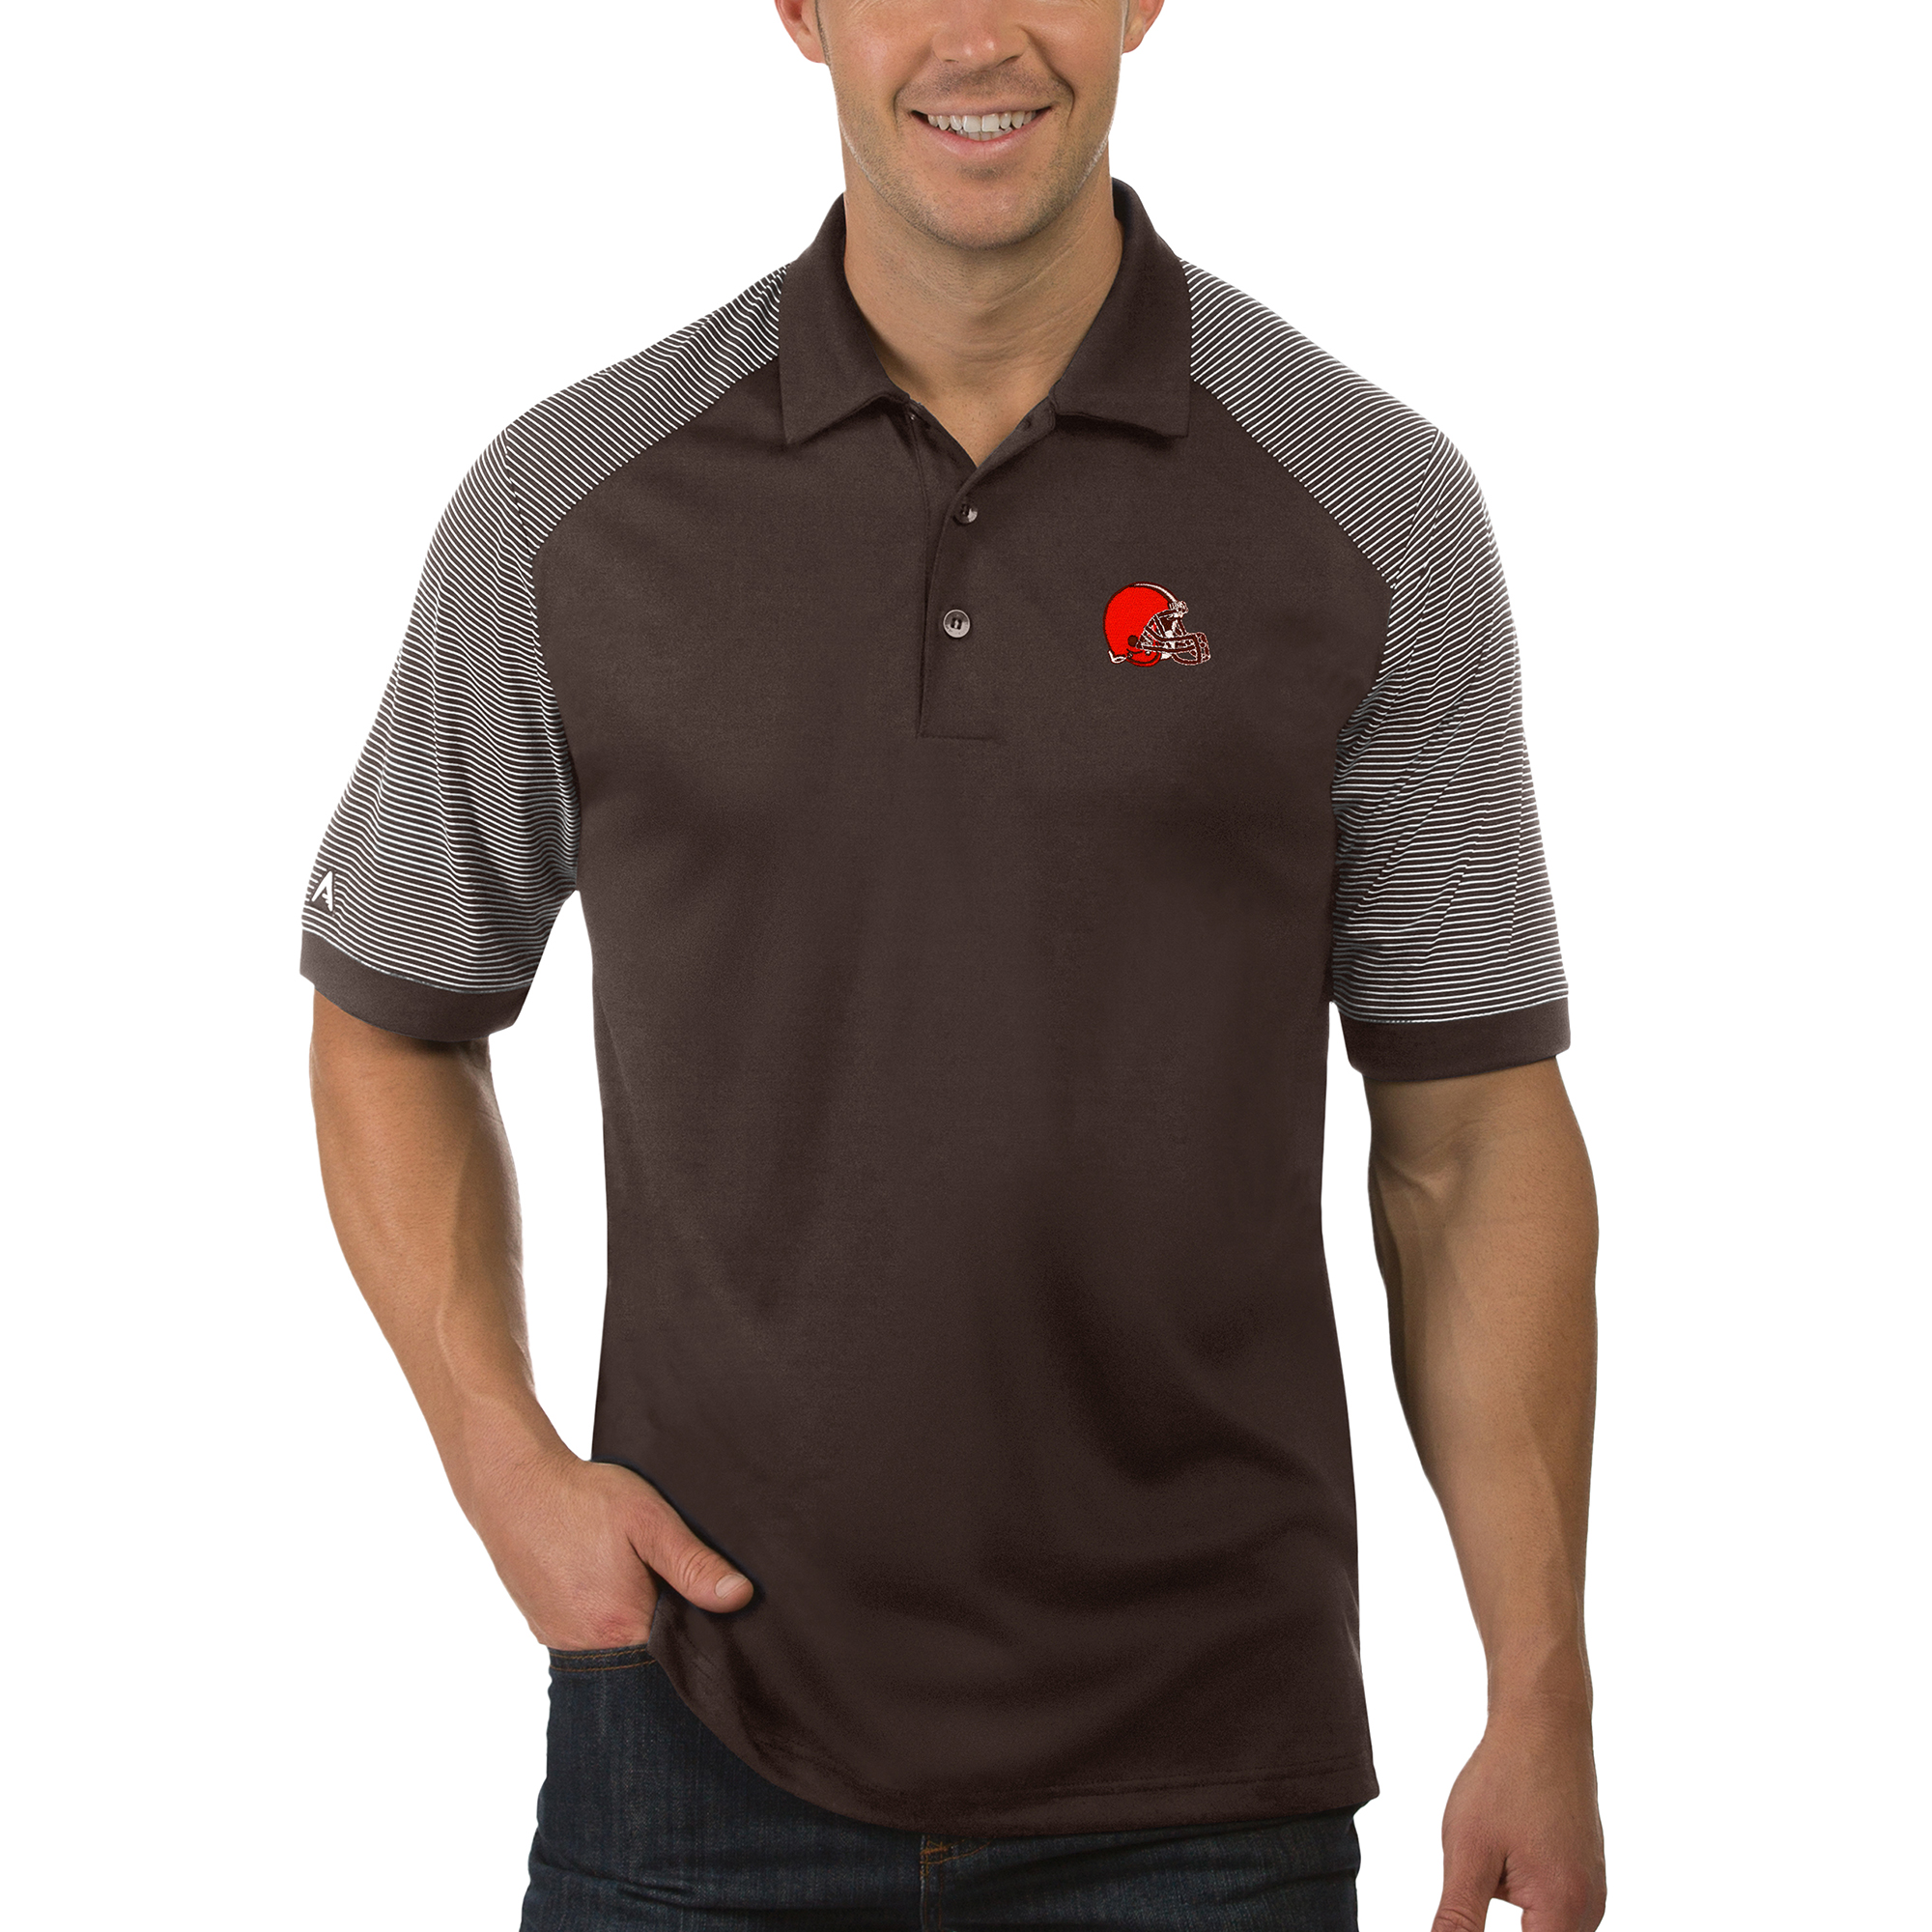 Cleveland Browns Antigua Desert Dry Engage Polo - Brown/White